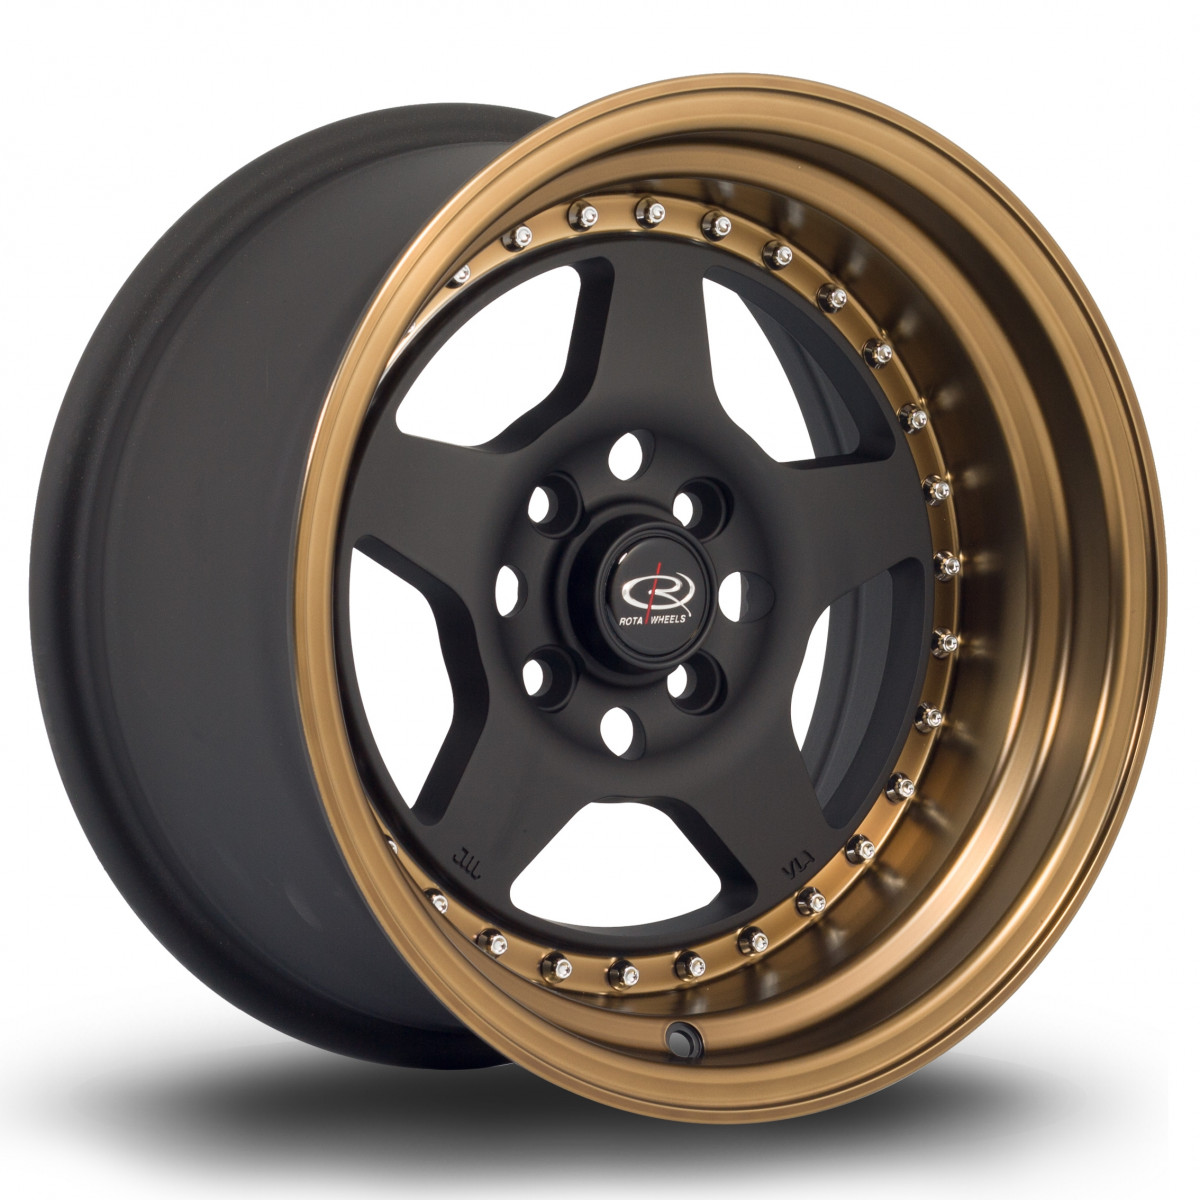 Kyusha 15x8 4x100 ET0 Flat Black with Speed Bronze Lip